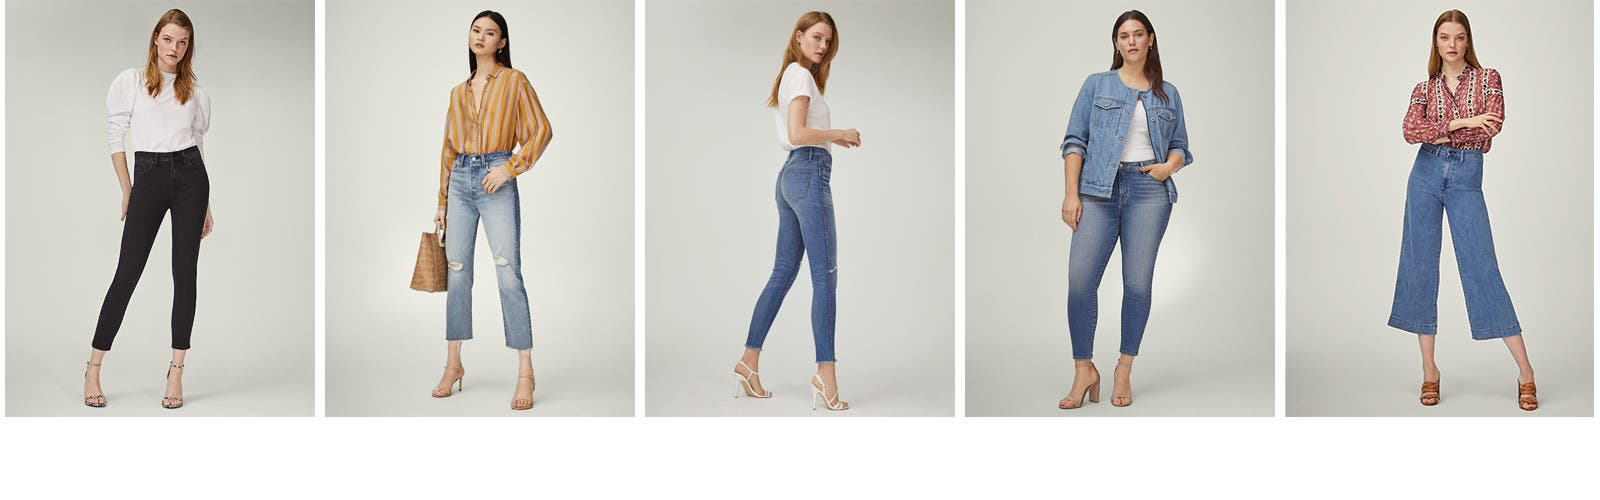 55e668319 Women's Jeans & Denim | Nordstrom